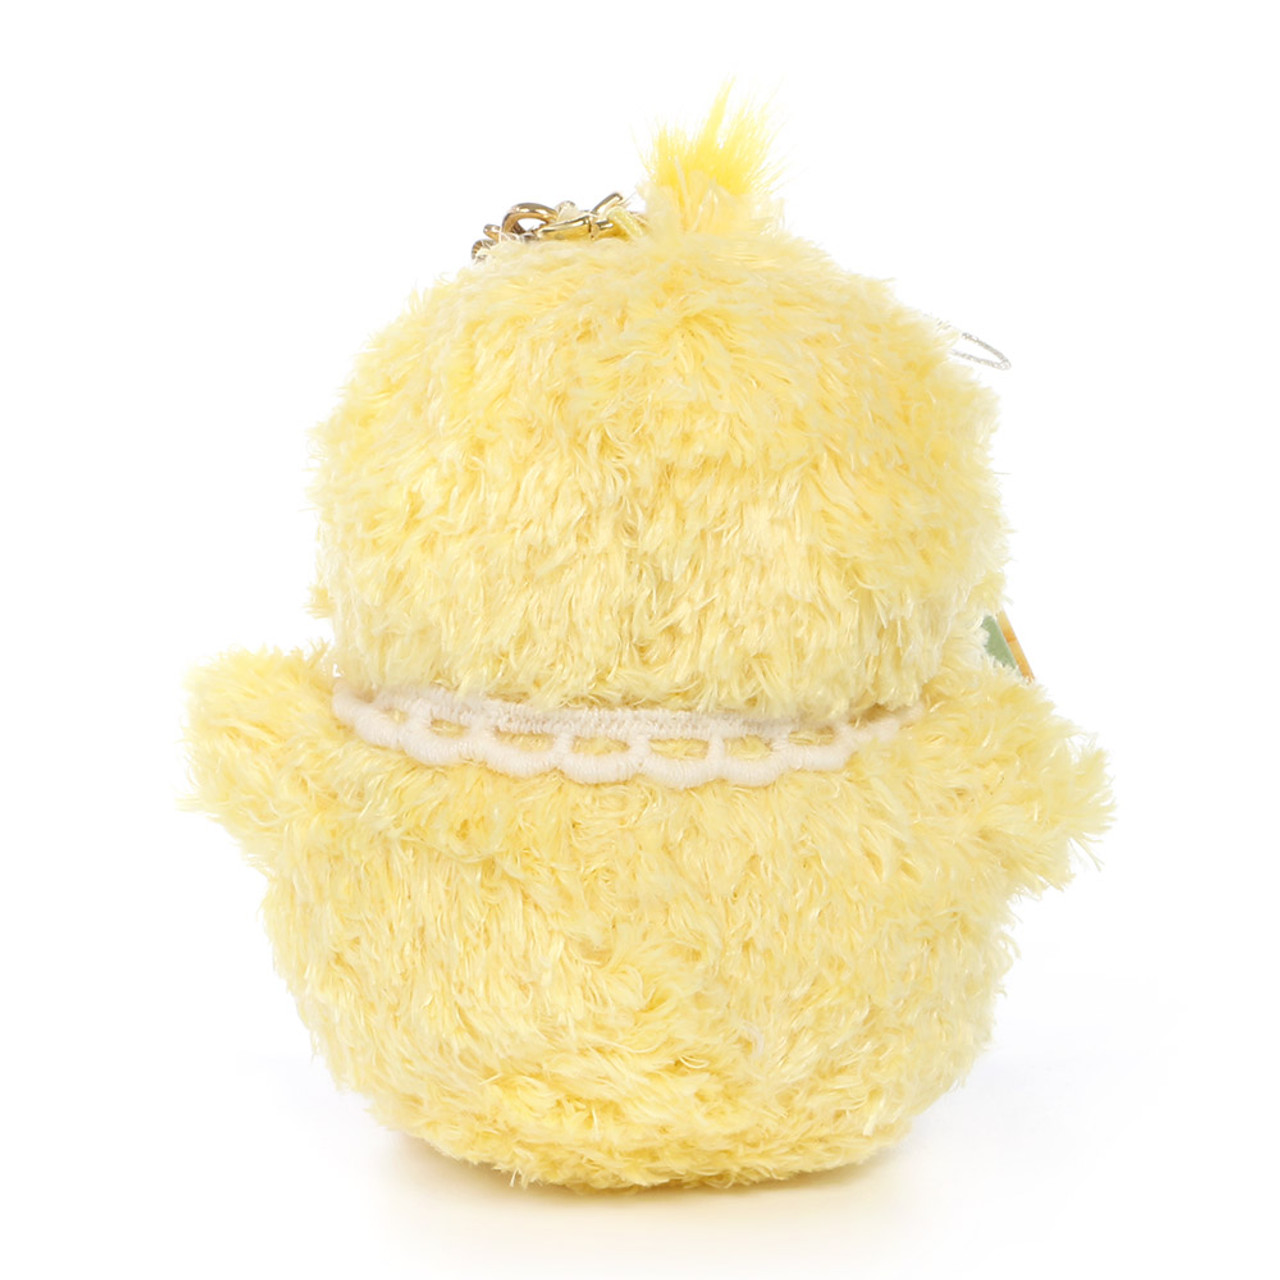 Naito Design Tot Series Chick Doll Charms - Chico ( Back View )